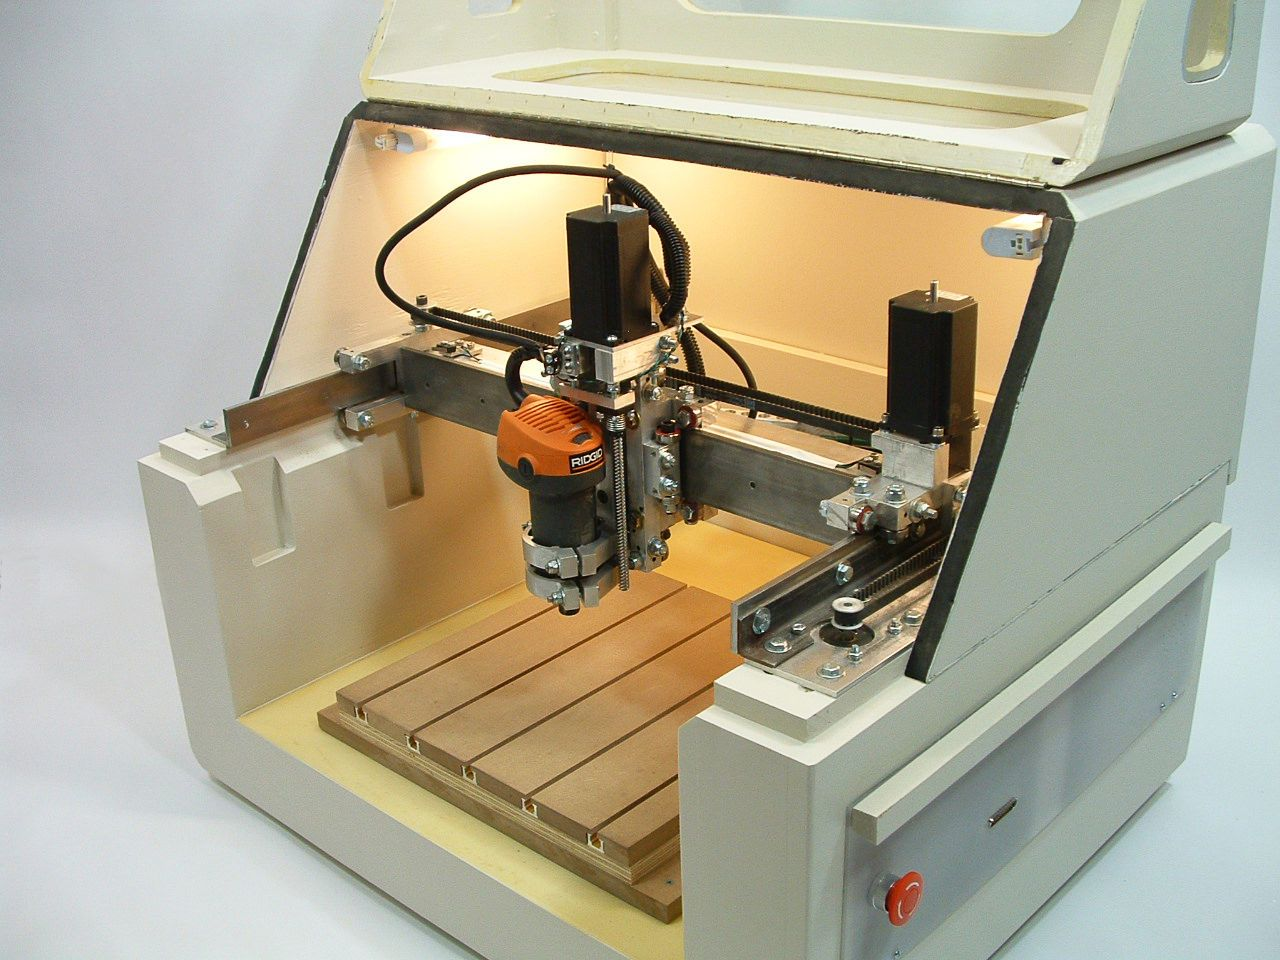 PLANS to build CNC 40 axis router table, milling machine, engraver ...